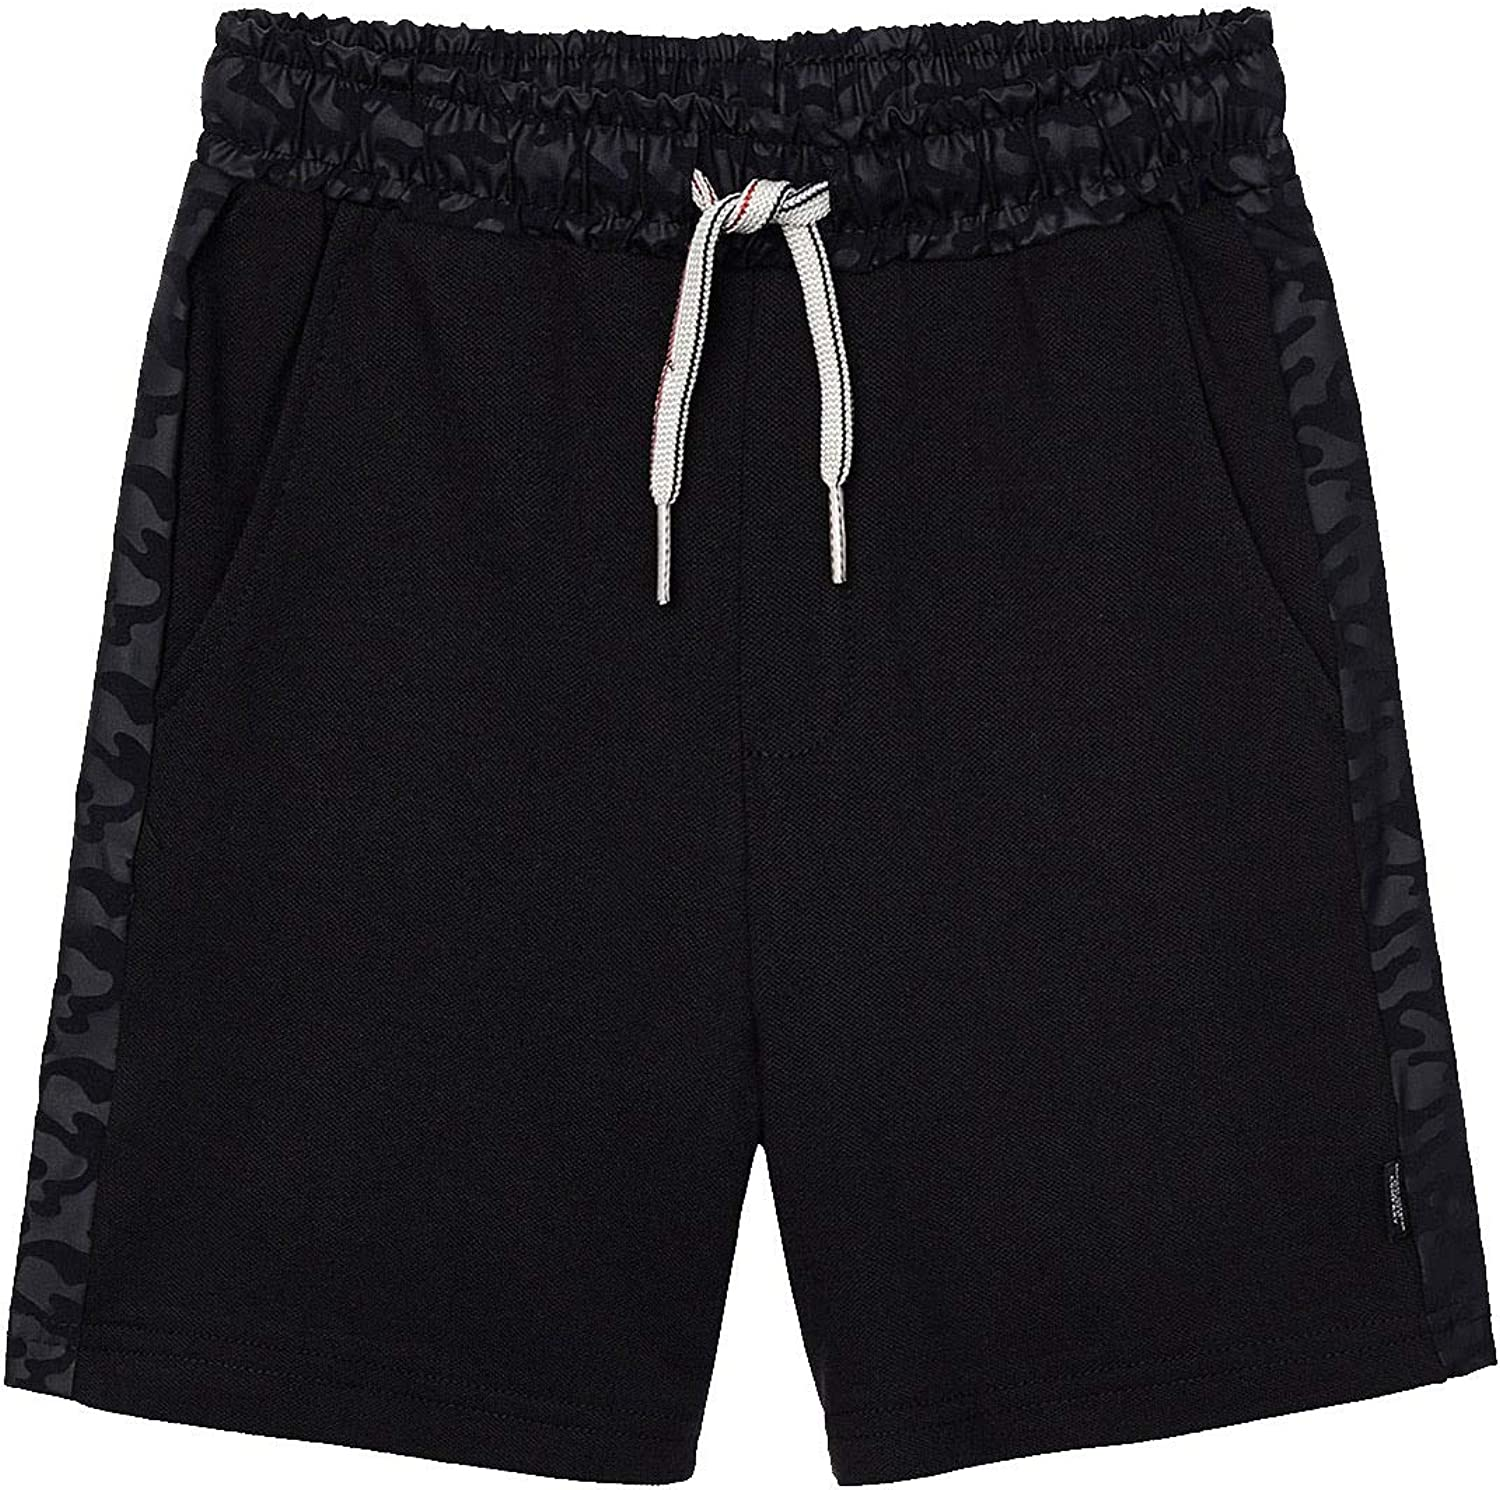 Mayoral - Very popular Shorts for Vynil 3240 San Jose Mall Boys